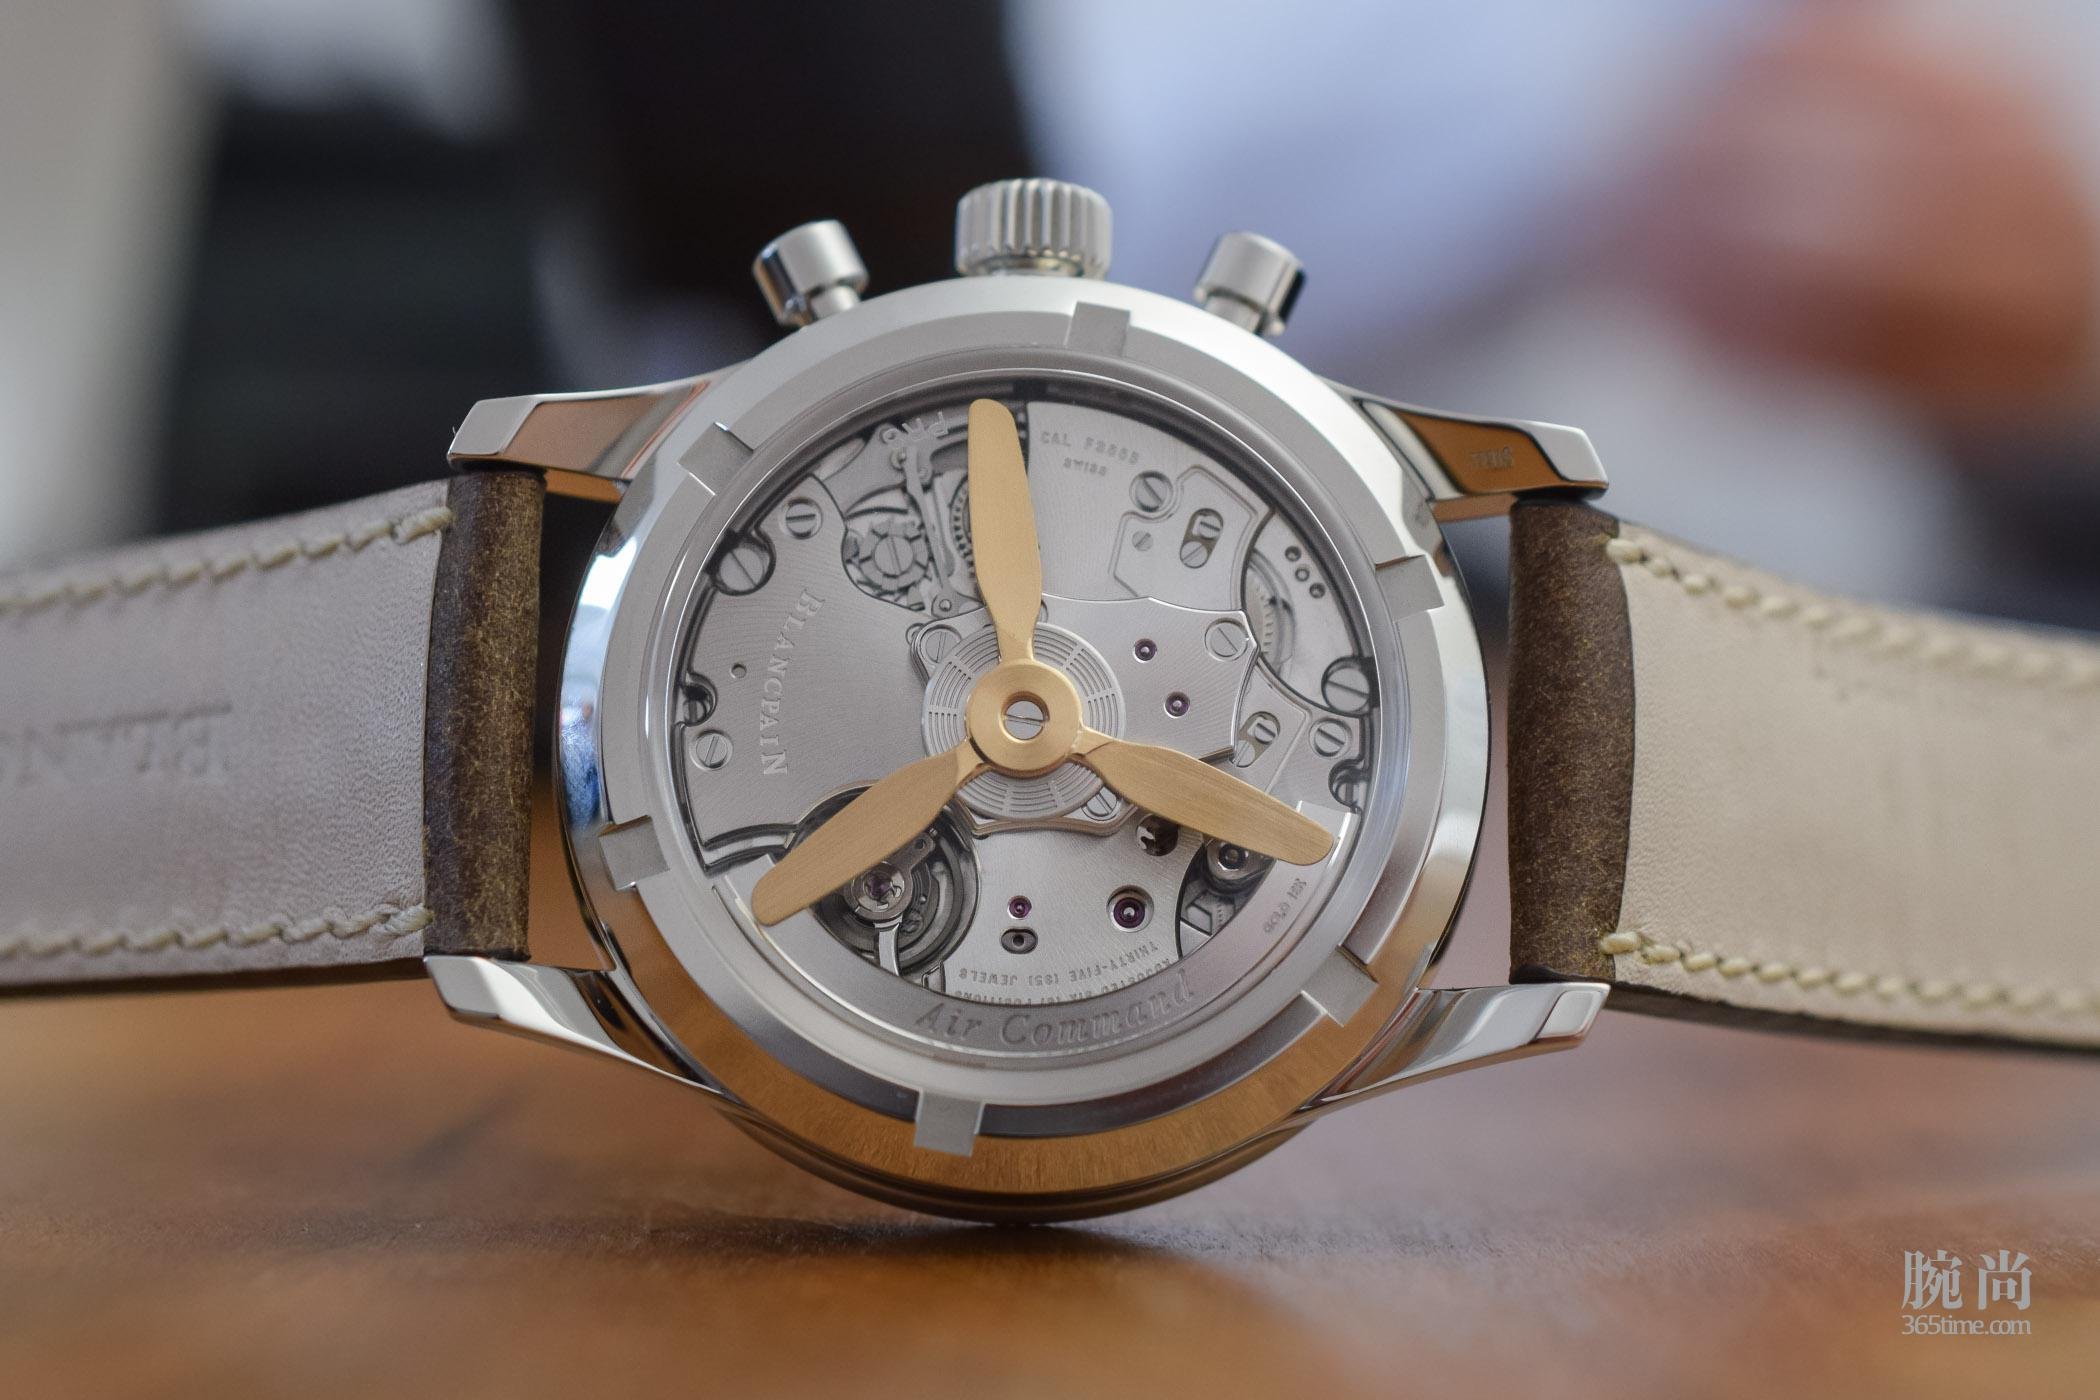 Blancpain-Air-Command-Chronograph-Re-Edition-2019-reference-AC01-1130-63A-1.jpg